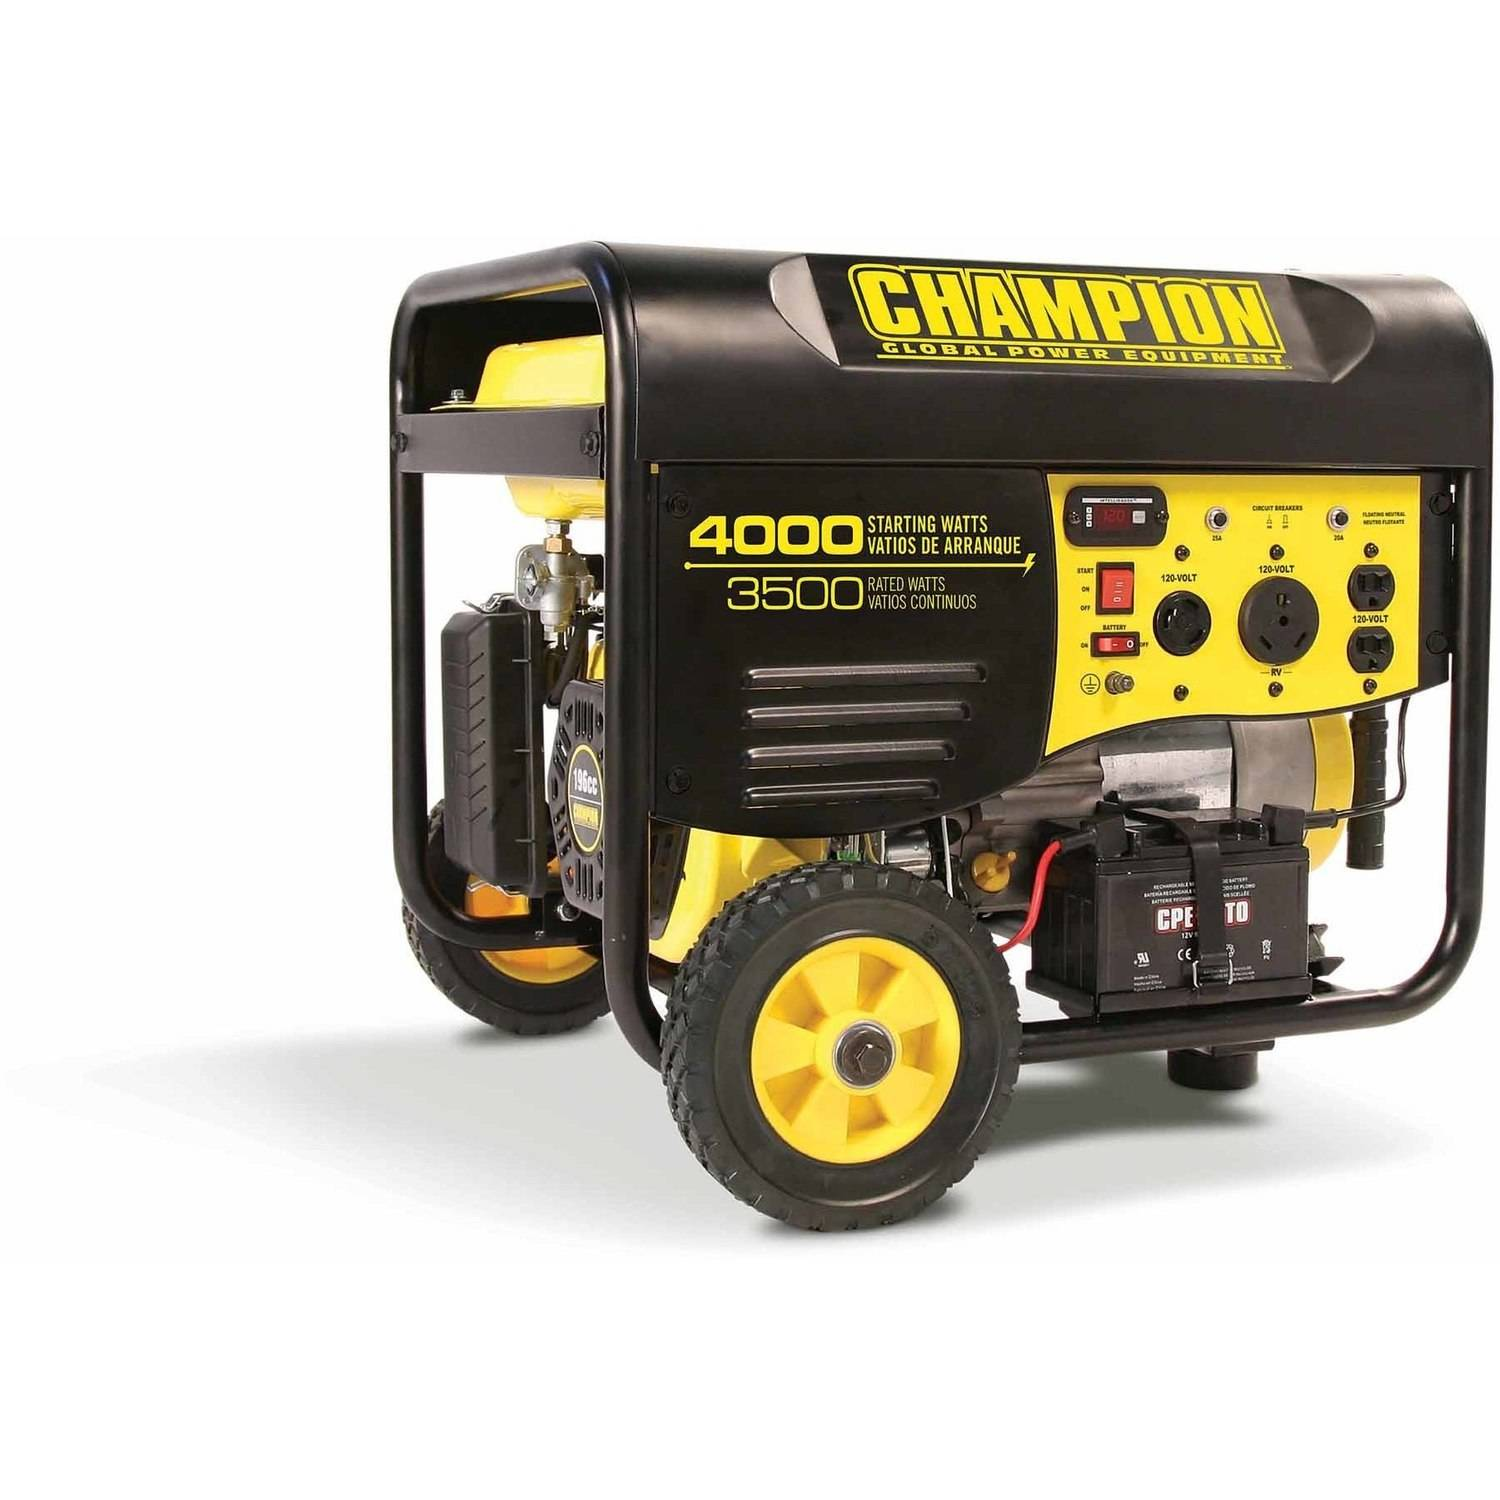 hight resolution of champion 46597 3500 watt rv ready portable generator with wheel kit walmart com